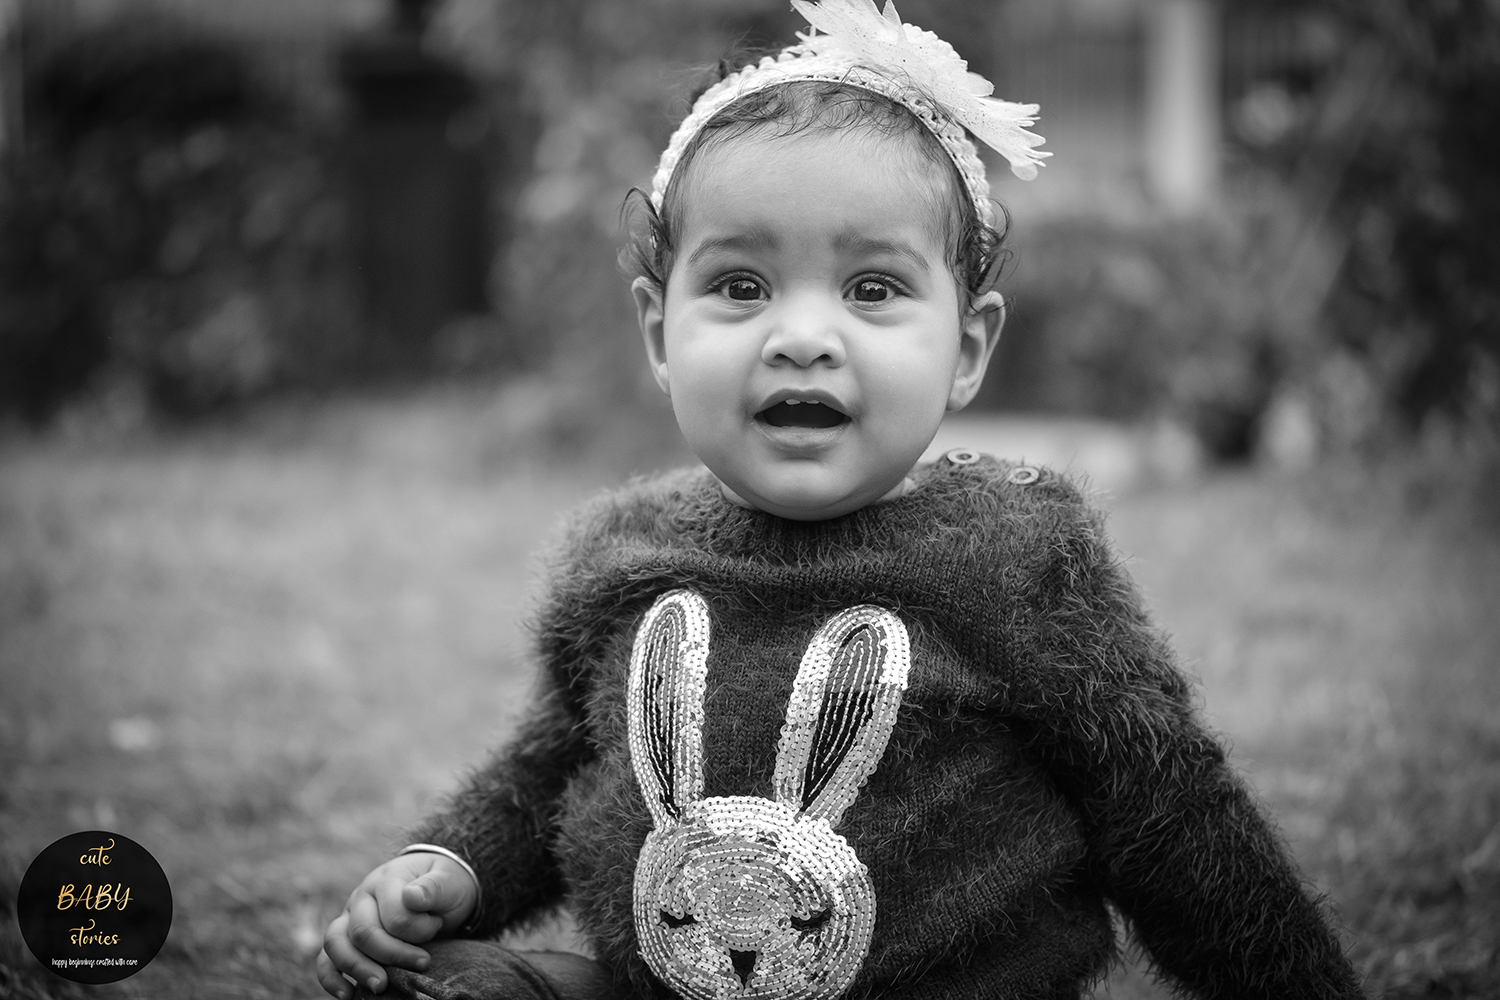 Baby Photographers in Durgapur, Baby Photographers in Kolkata, Baby Photographers in Asansol, Baby Photography, New Born Photography, Pre Birthday Photography, One Year Photography